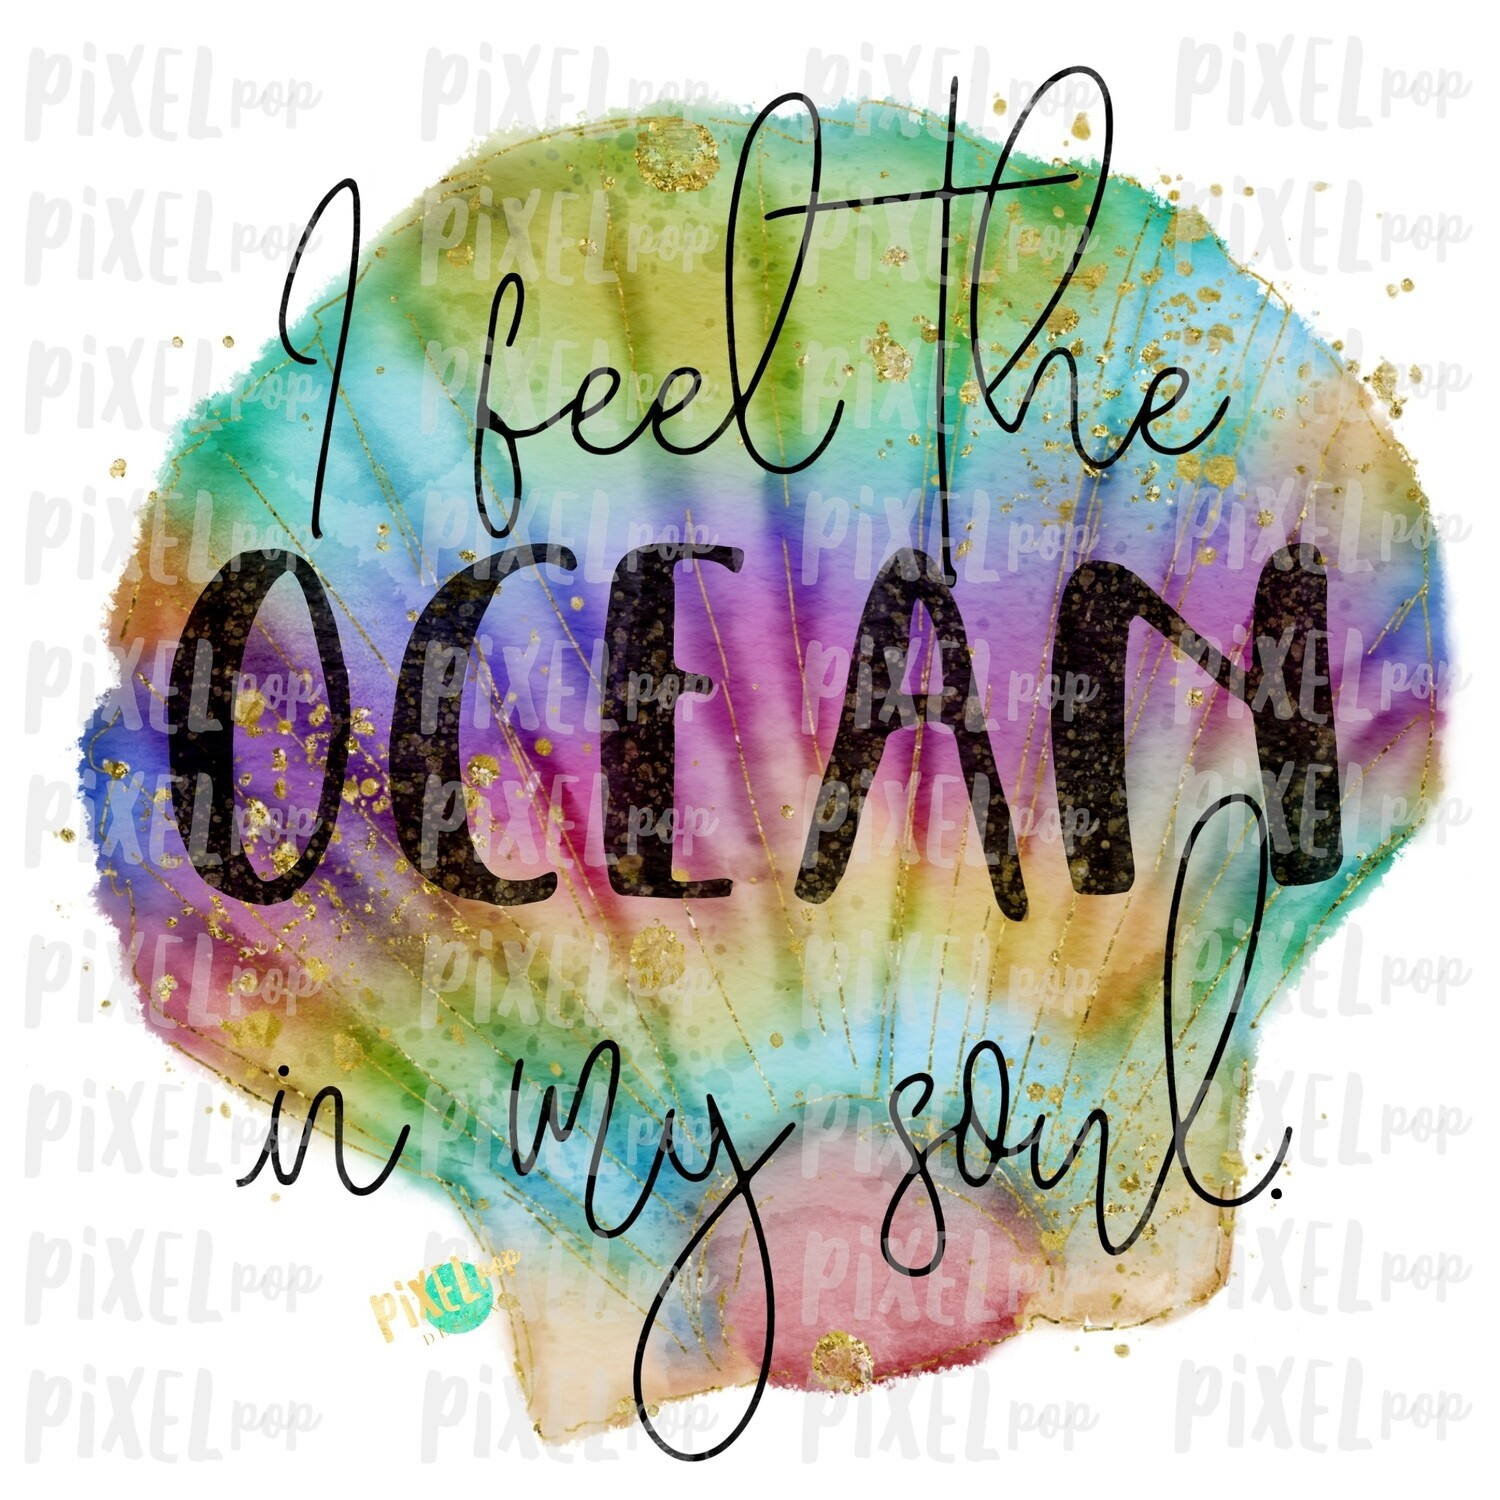 I Feel the Ocean in My Soul Shell Sublimation Art | School PNG| Hand Drawn PNG | Sublimation PNG | Digital Download | Printable Artwork | Art